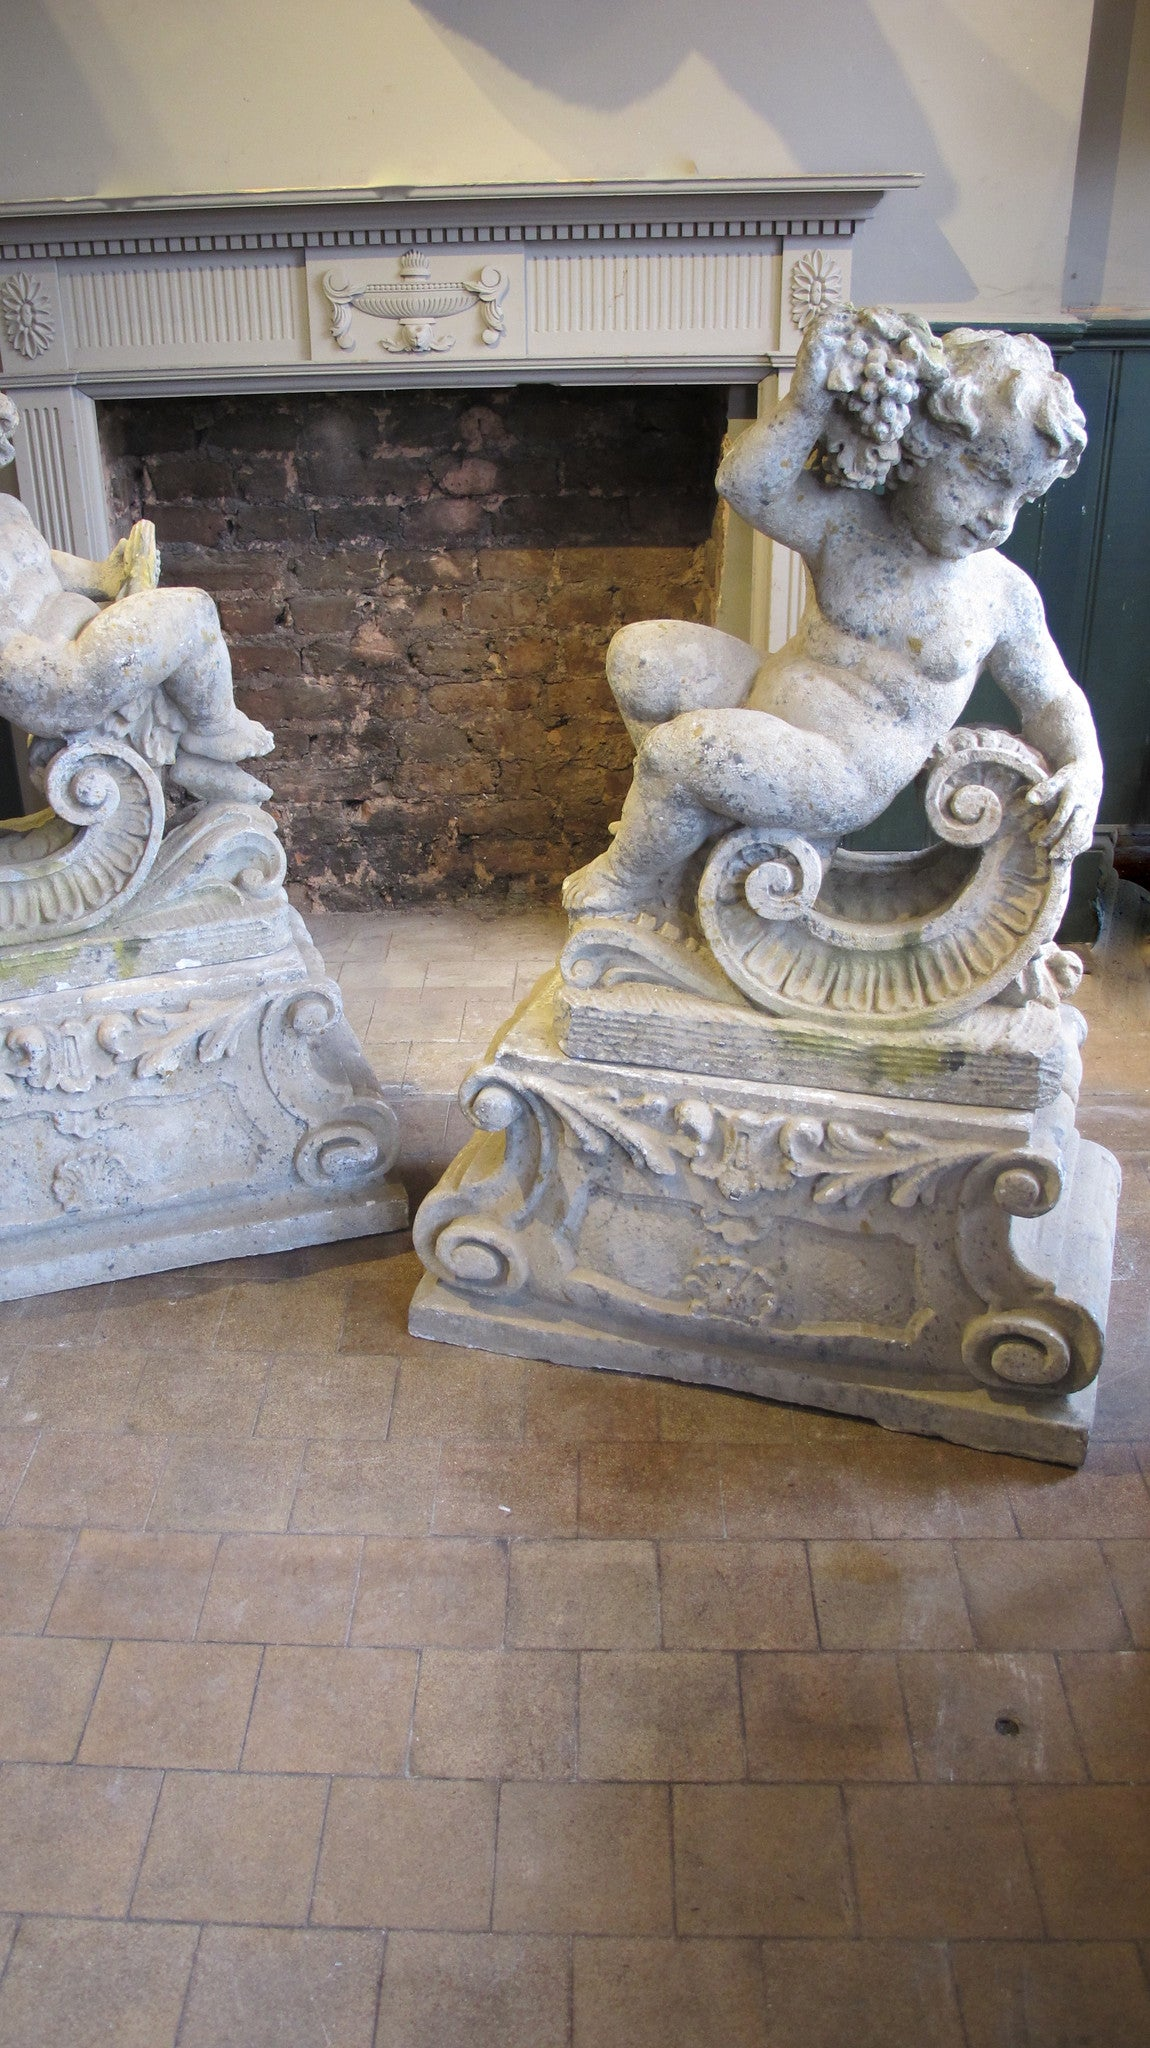 X Pair of Classical reconstituted stone statues of recumbent cherubs early 20th century.